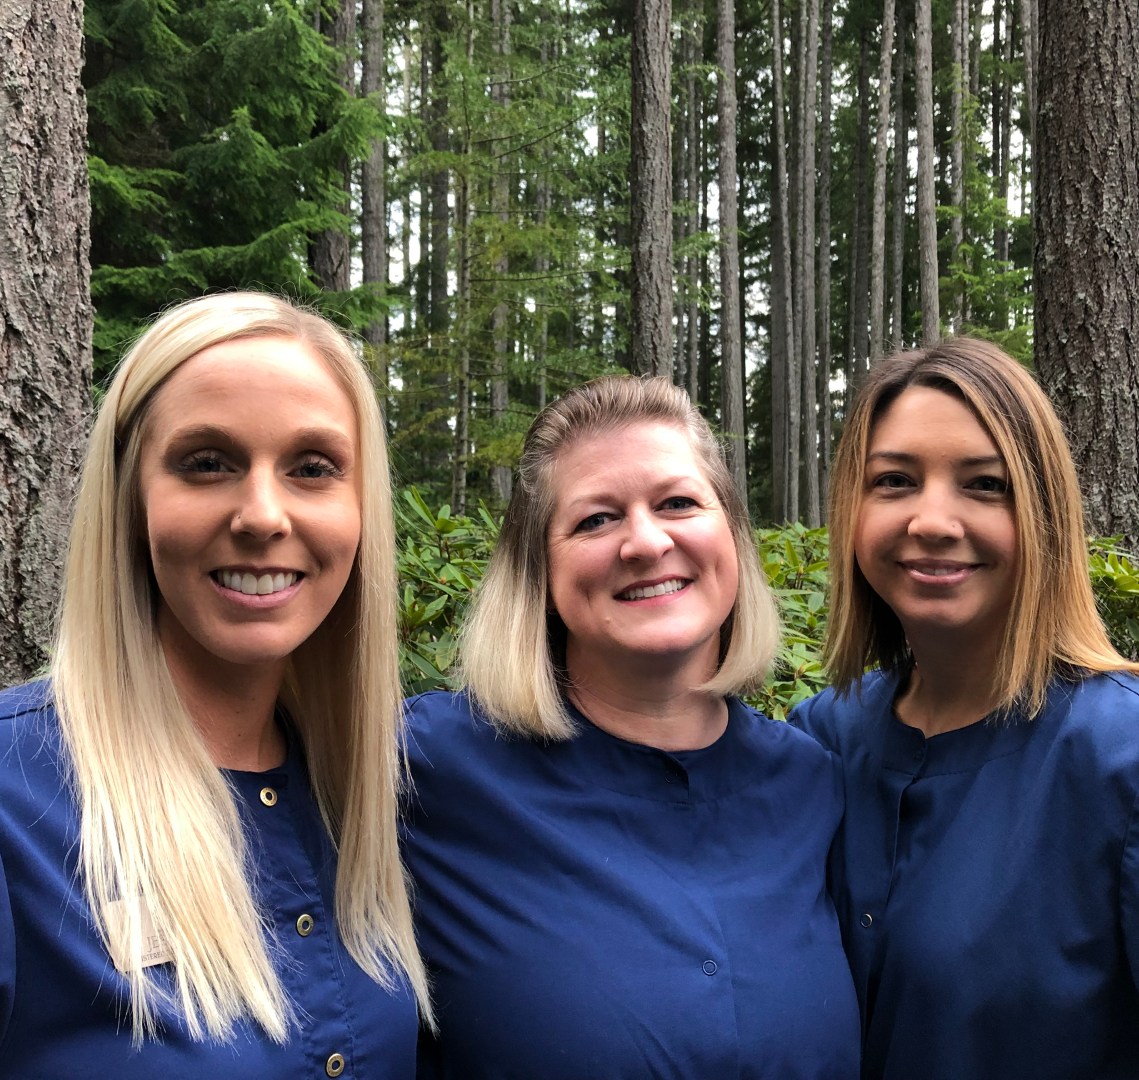 A few CLD Employees smiling in the forest